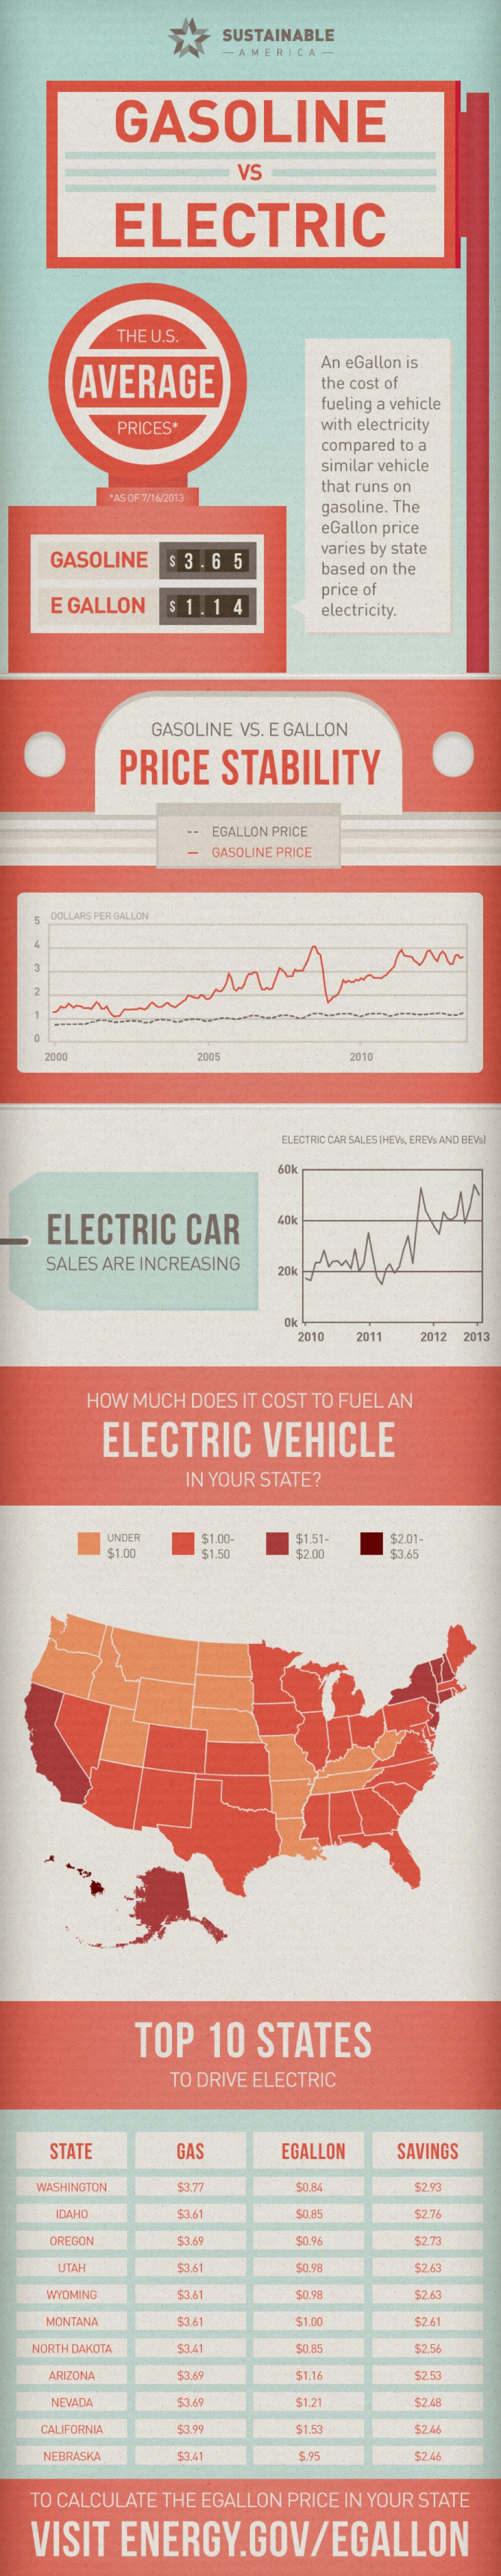 Gasoline vs Electric Infographic